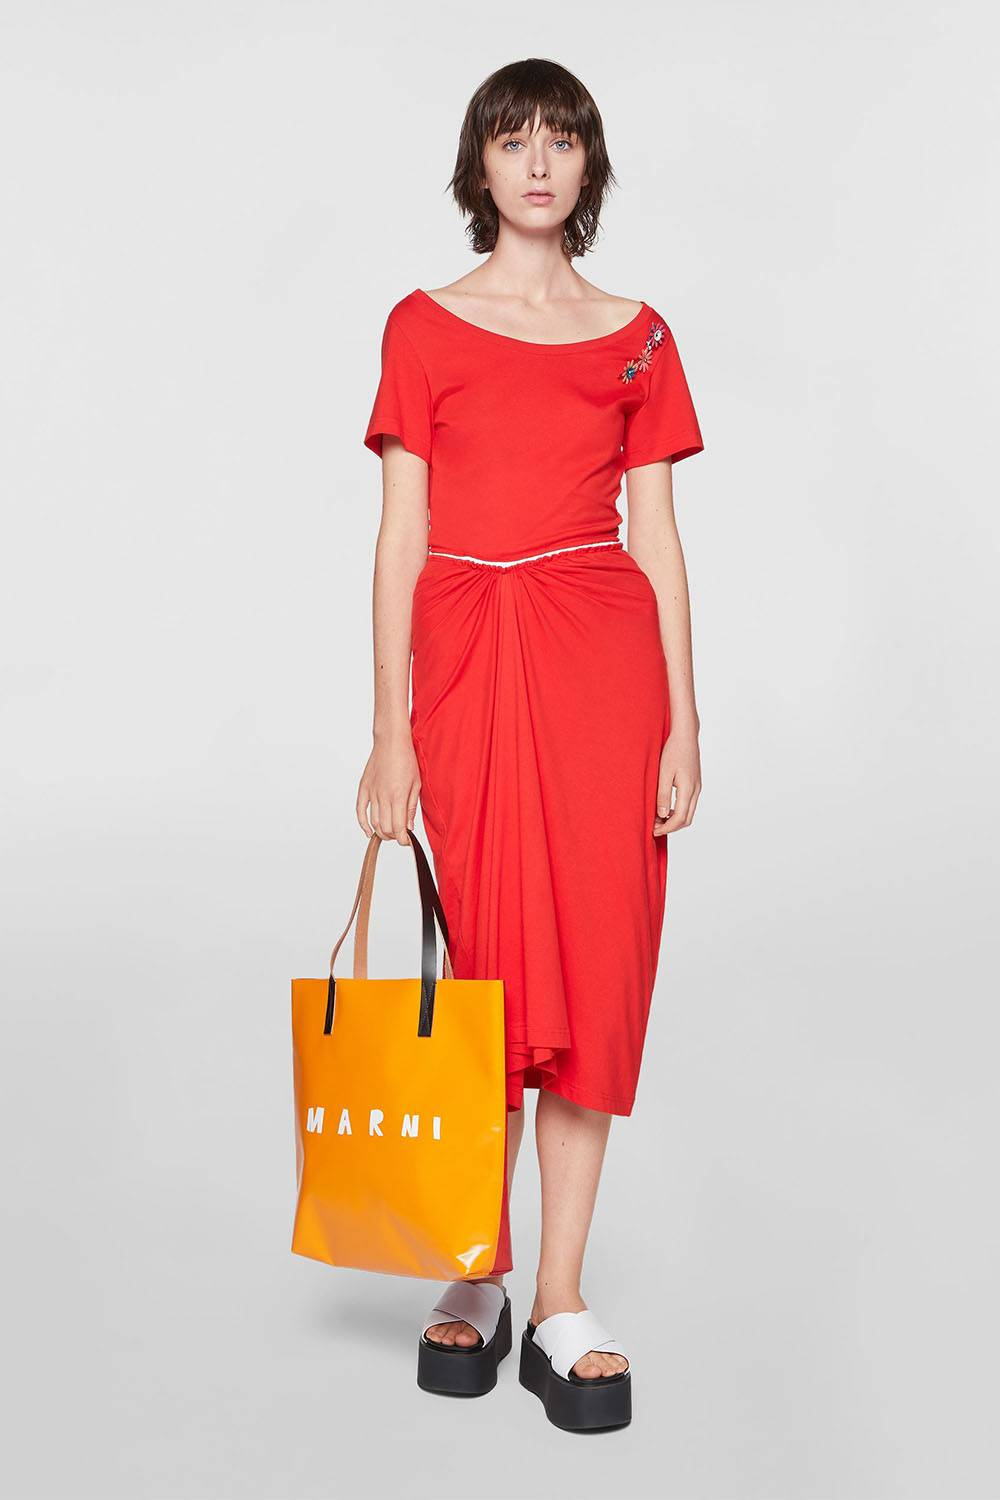 marni affordable luxury clothing brand